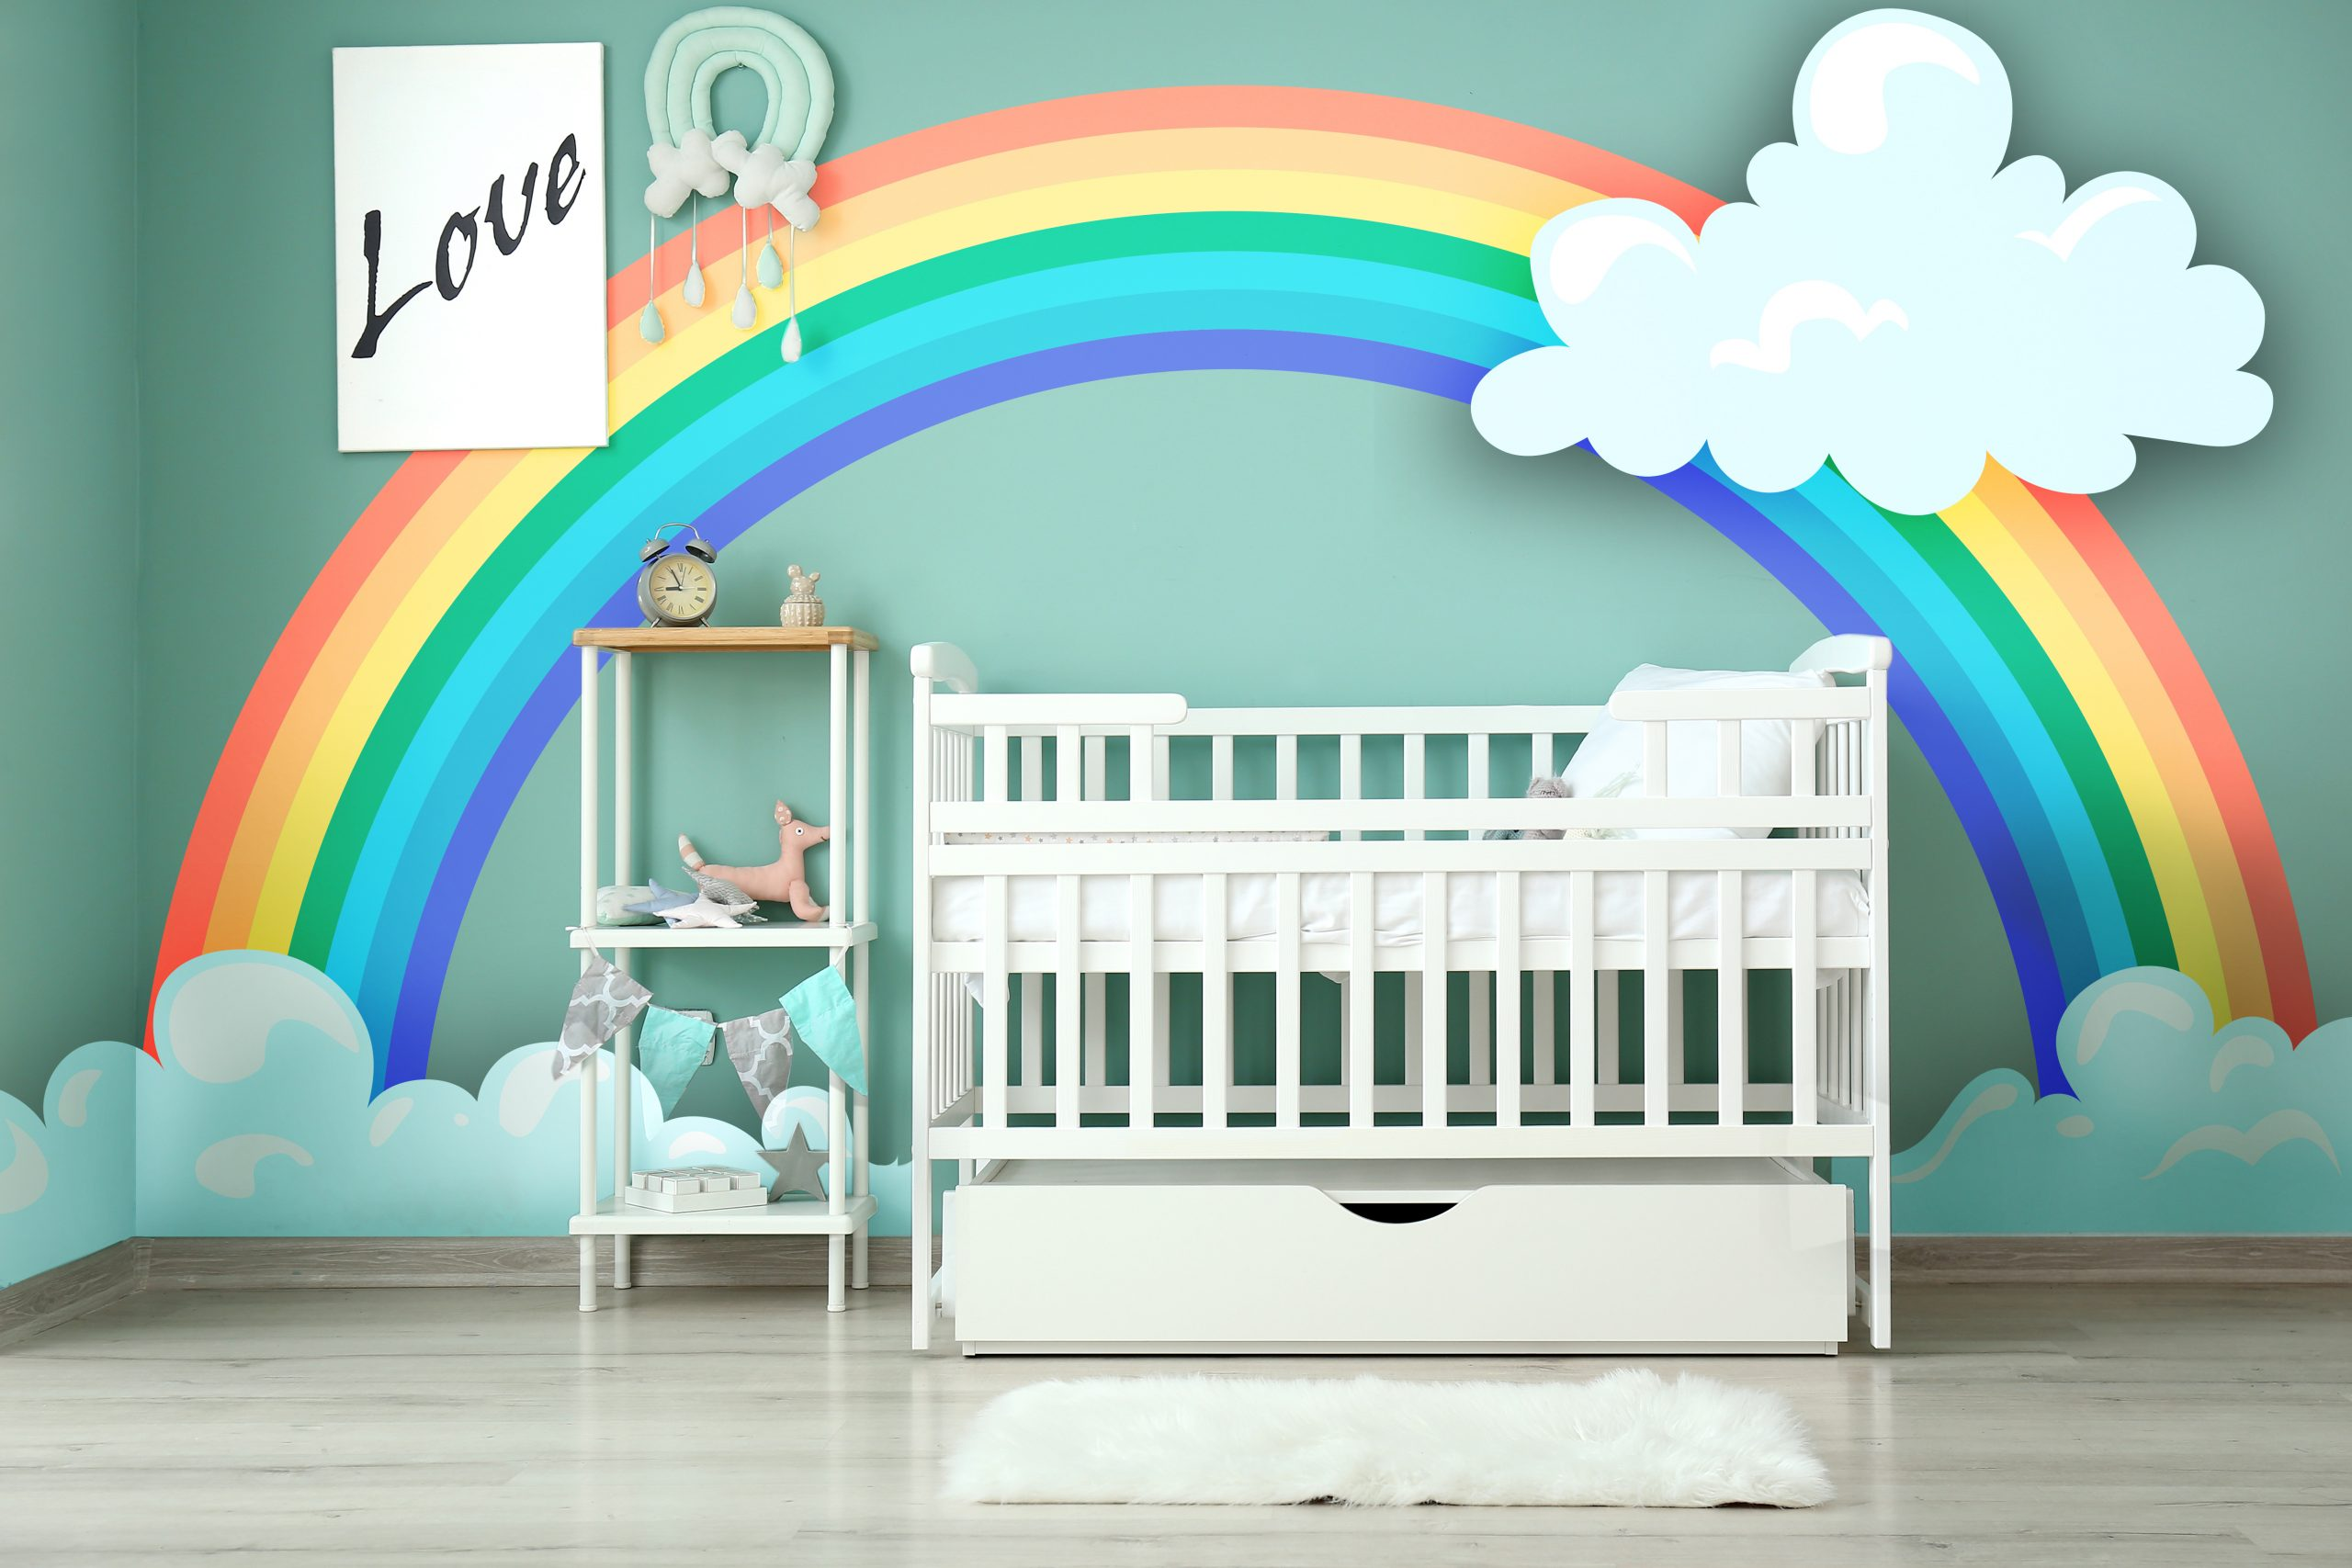 Modern baby room with crib and painting of rainbow on wall